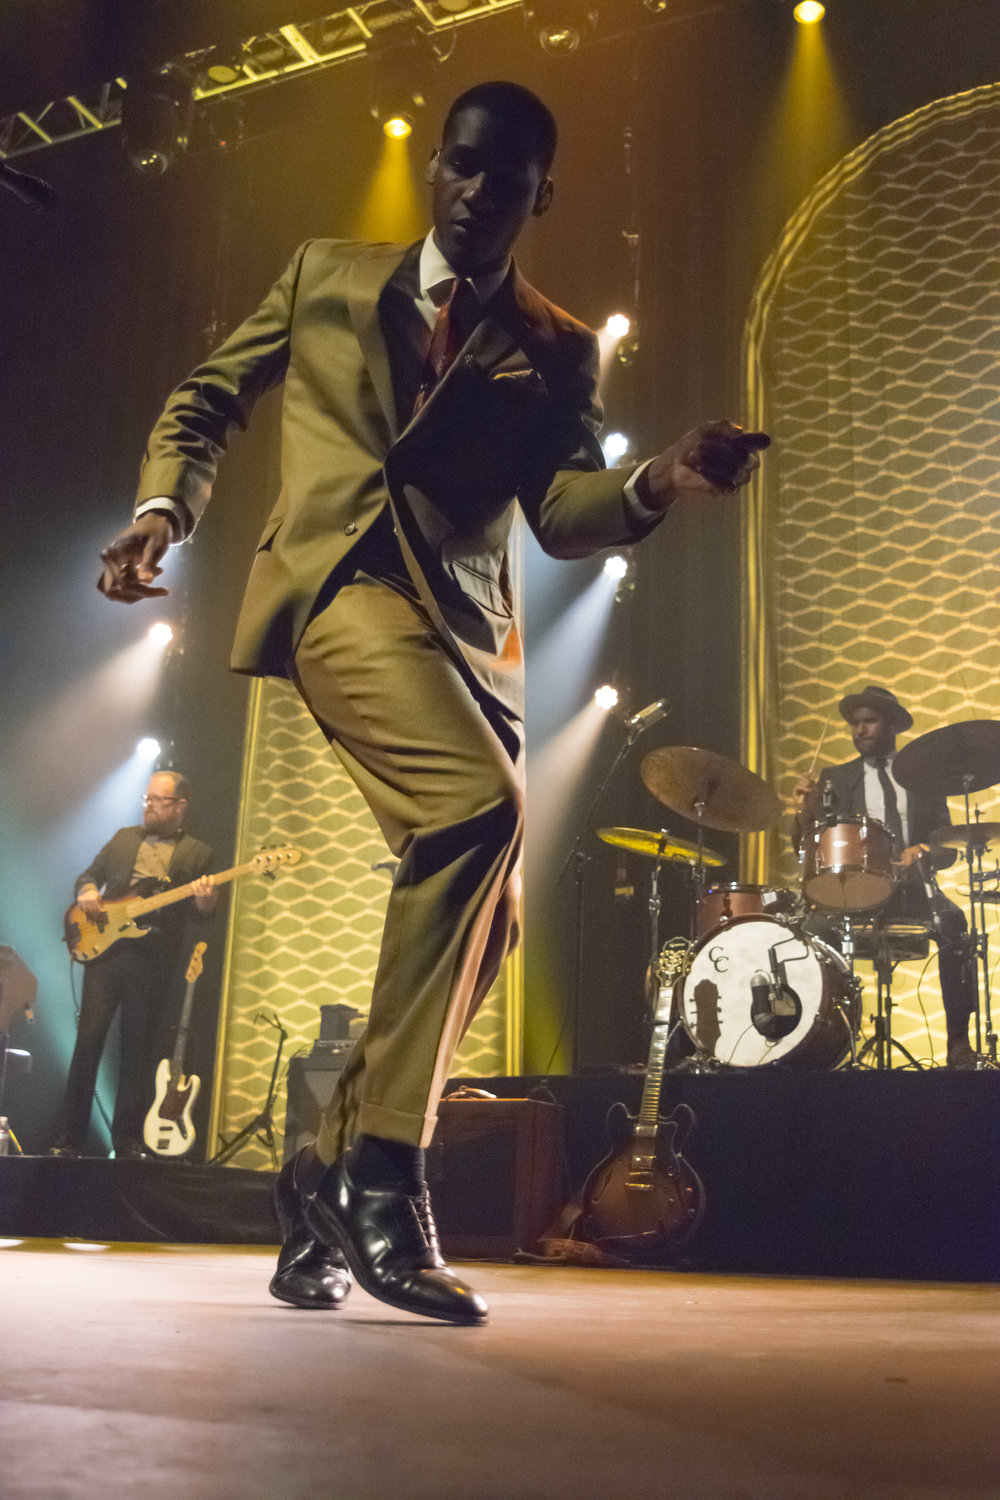 Concert Review: Leon Bridges at the Fox Theater